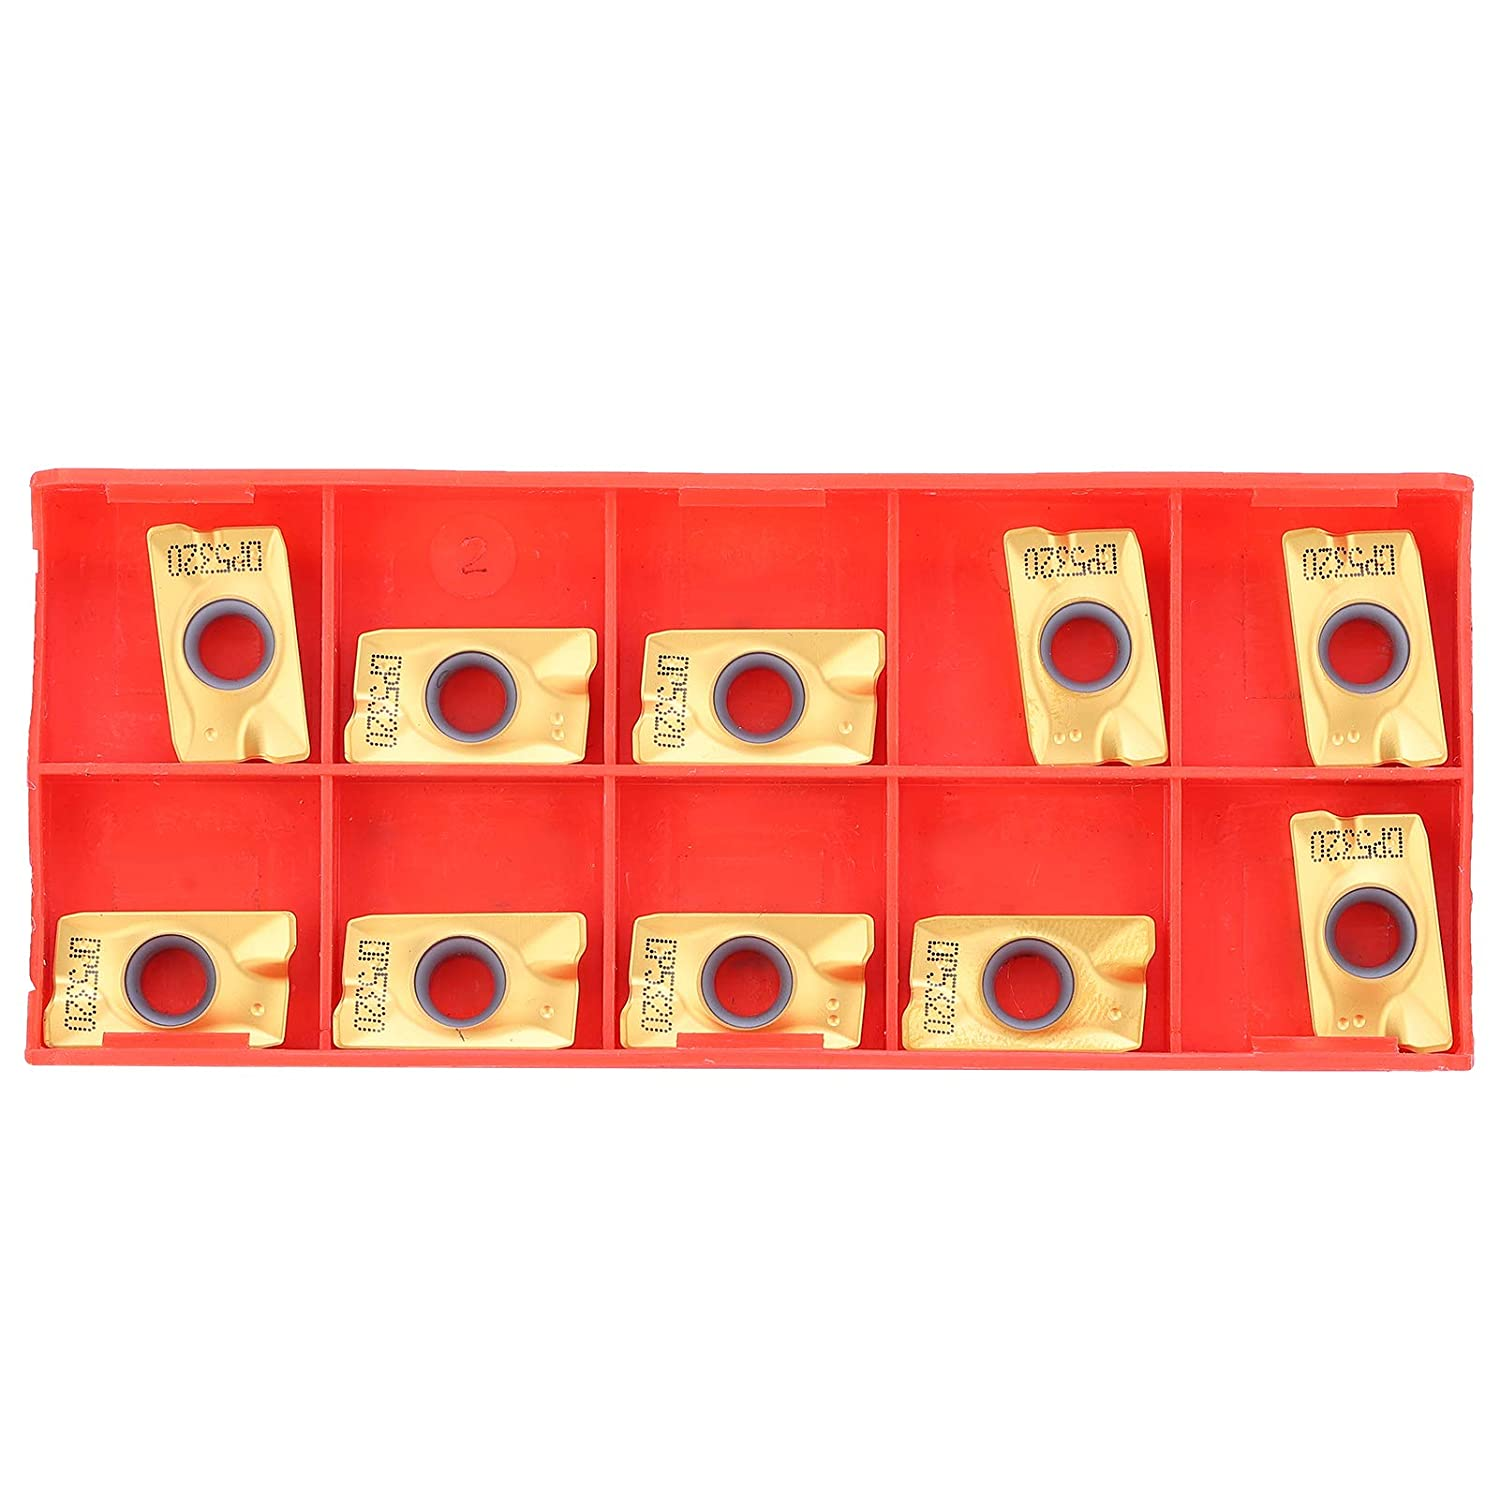 10Pcs Cemented Al sold out. Carbide Limited price Milling PVD Coating Insert Cutter